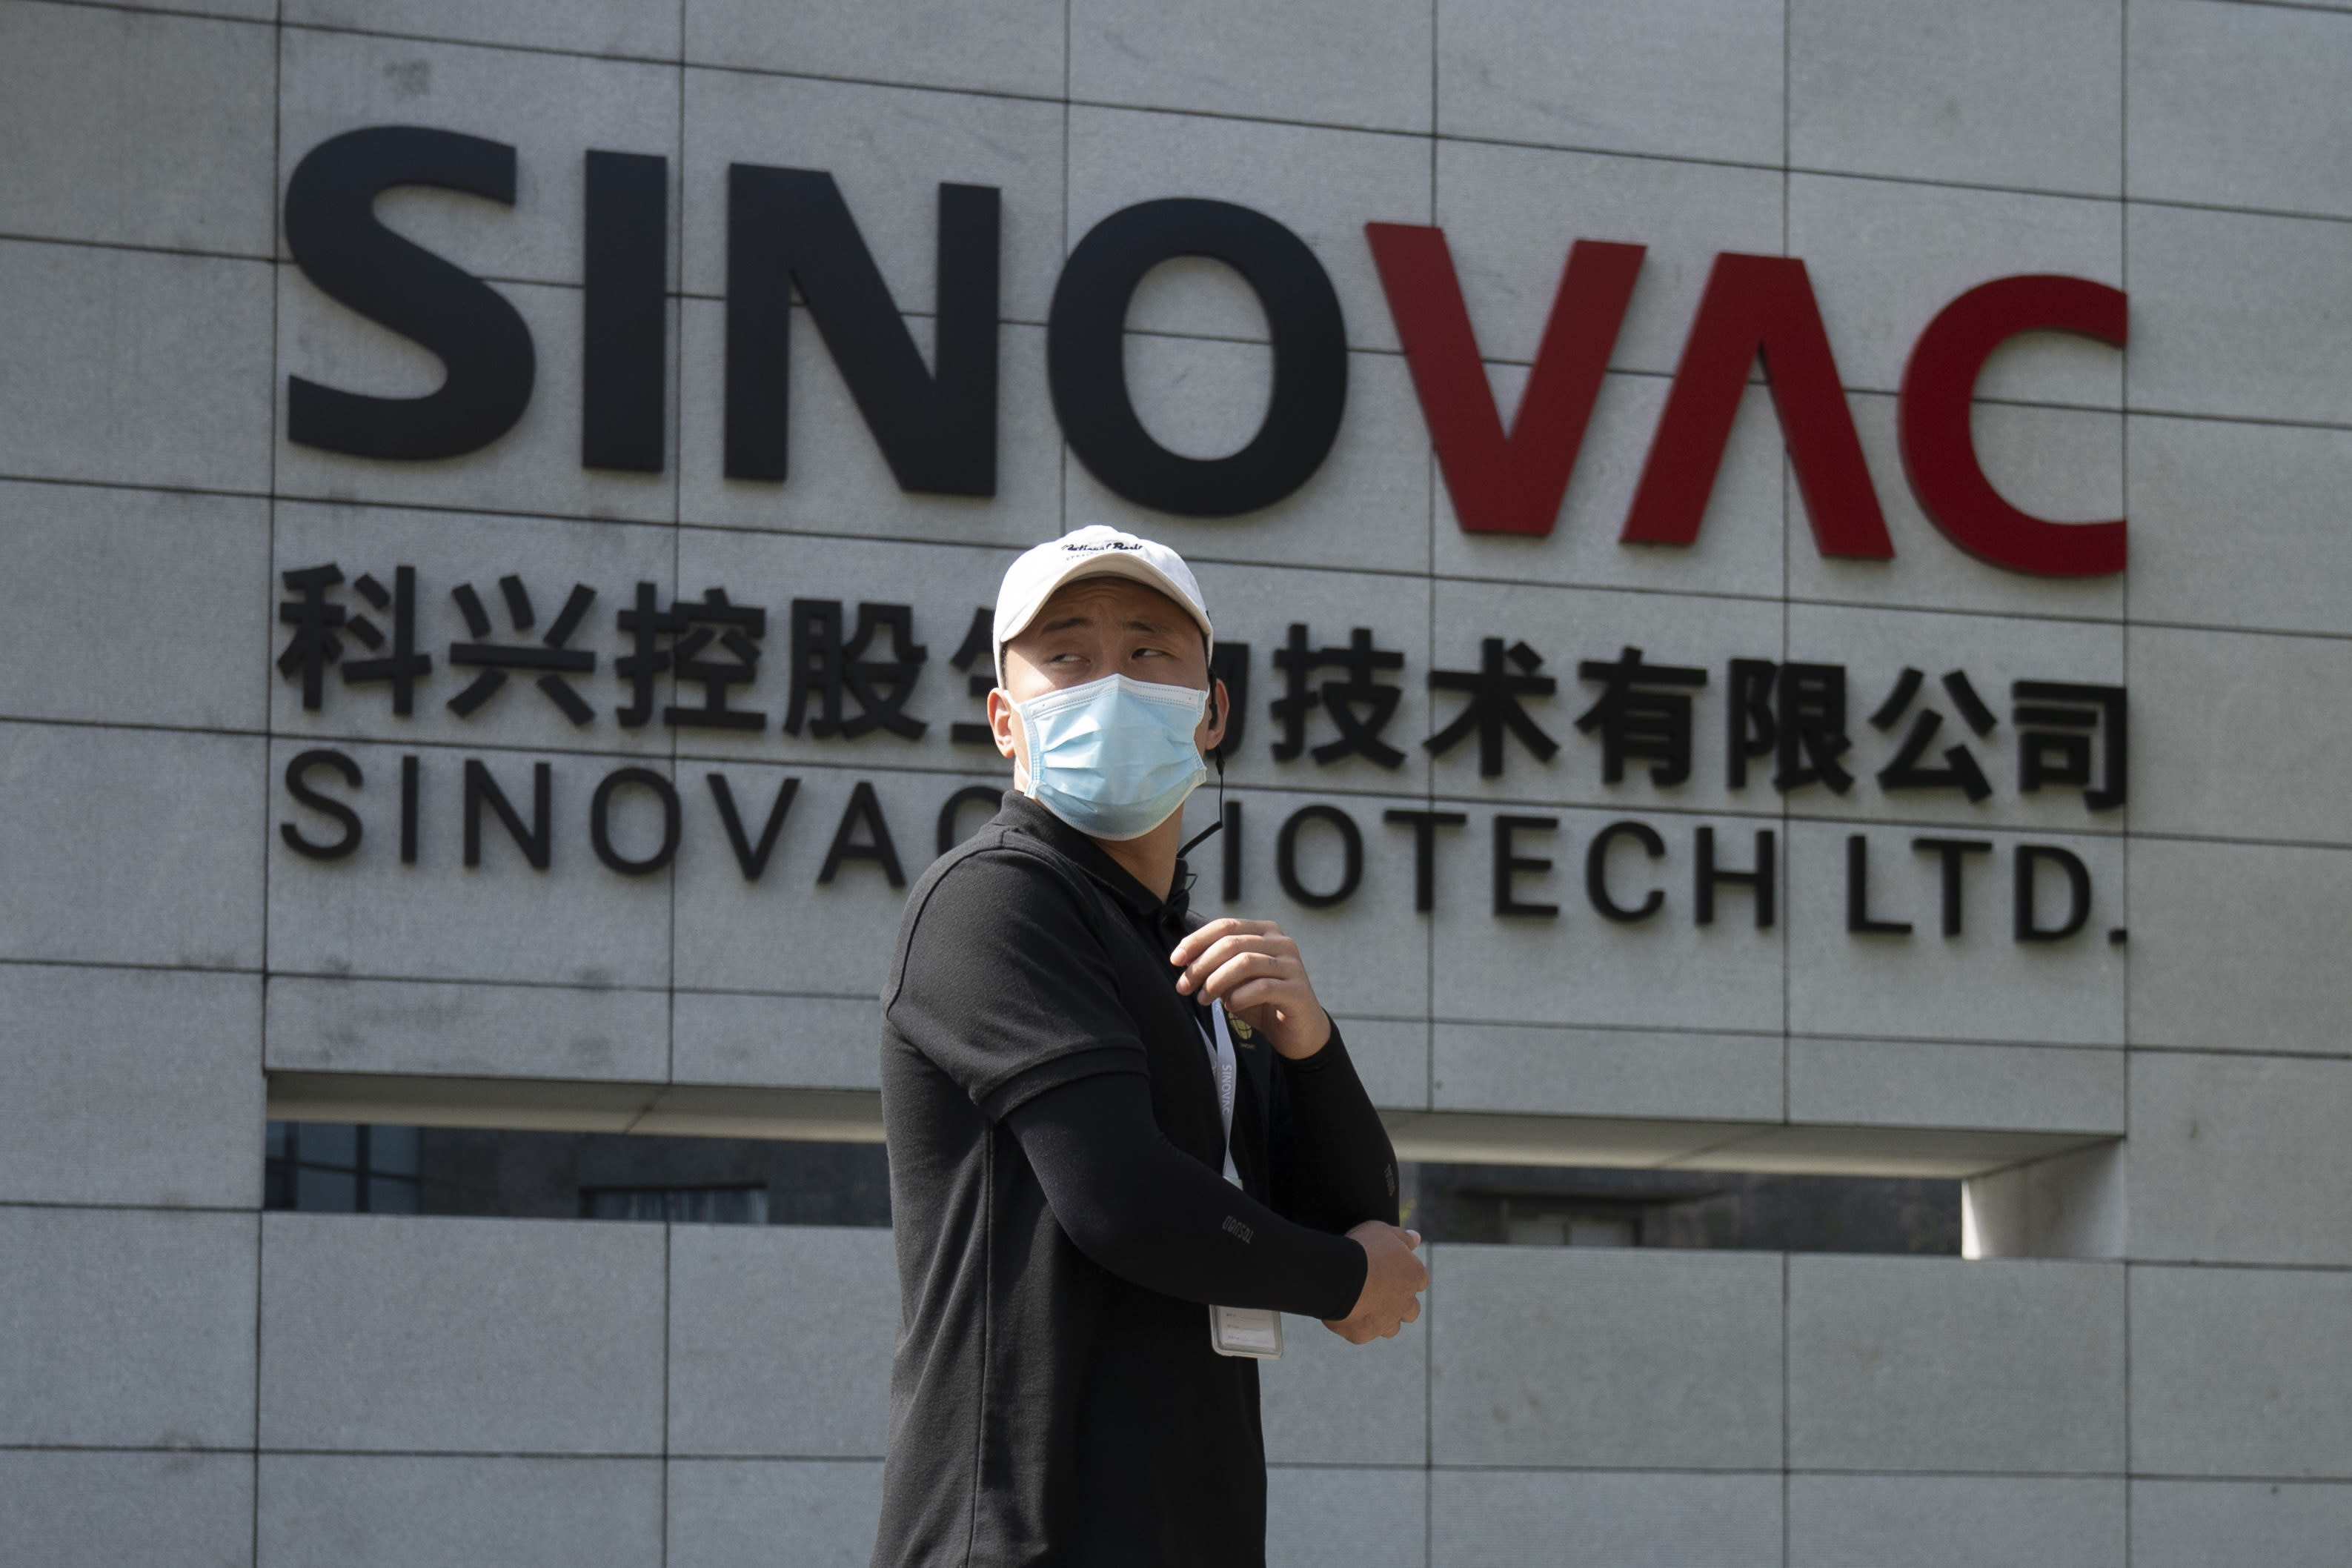 A worker passes by the logo outside the SinoVac vaccine factory in Beijing on Thursday, Sept. 24, 2020. SinoVac, one of China's pharmaceutical companies behind a leading COVID-19 vaccine candidate says its vaccine will be ready by early 2021 for distribution worldwide, including the U.S. (AP Photo/Ng Han Guan)